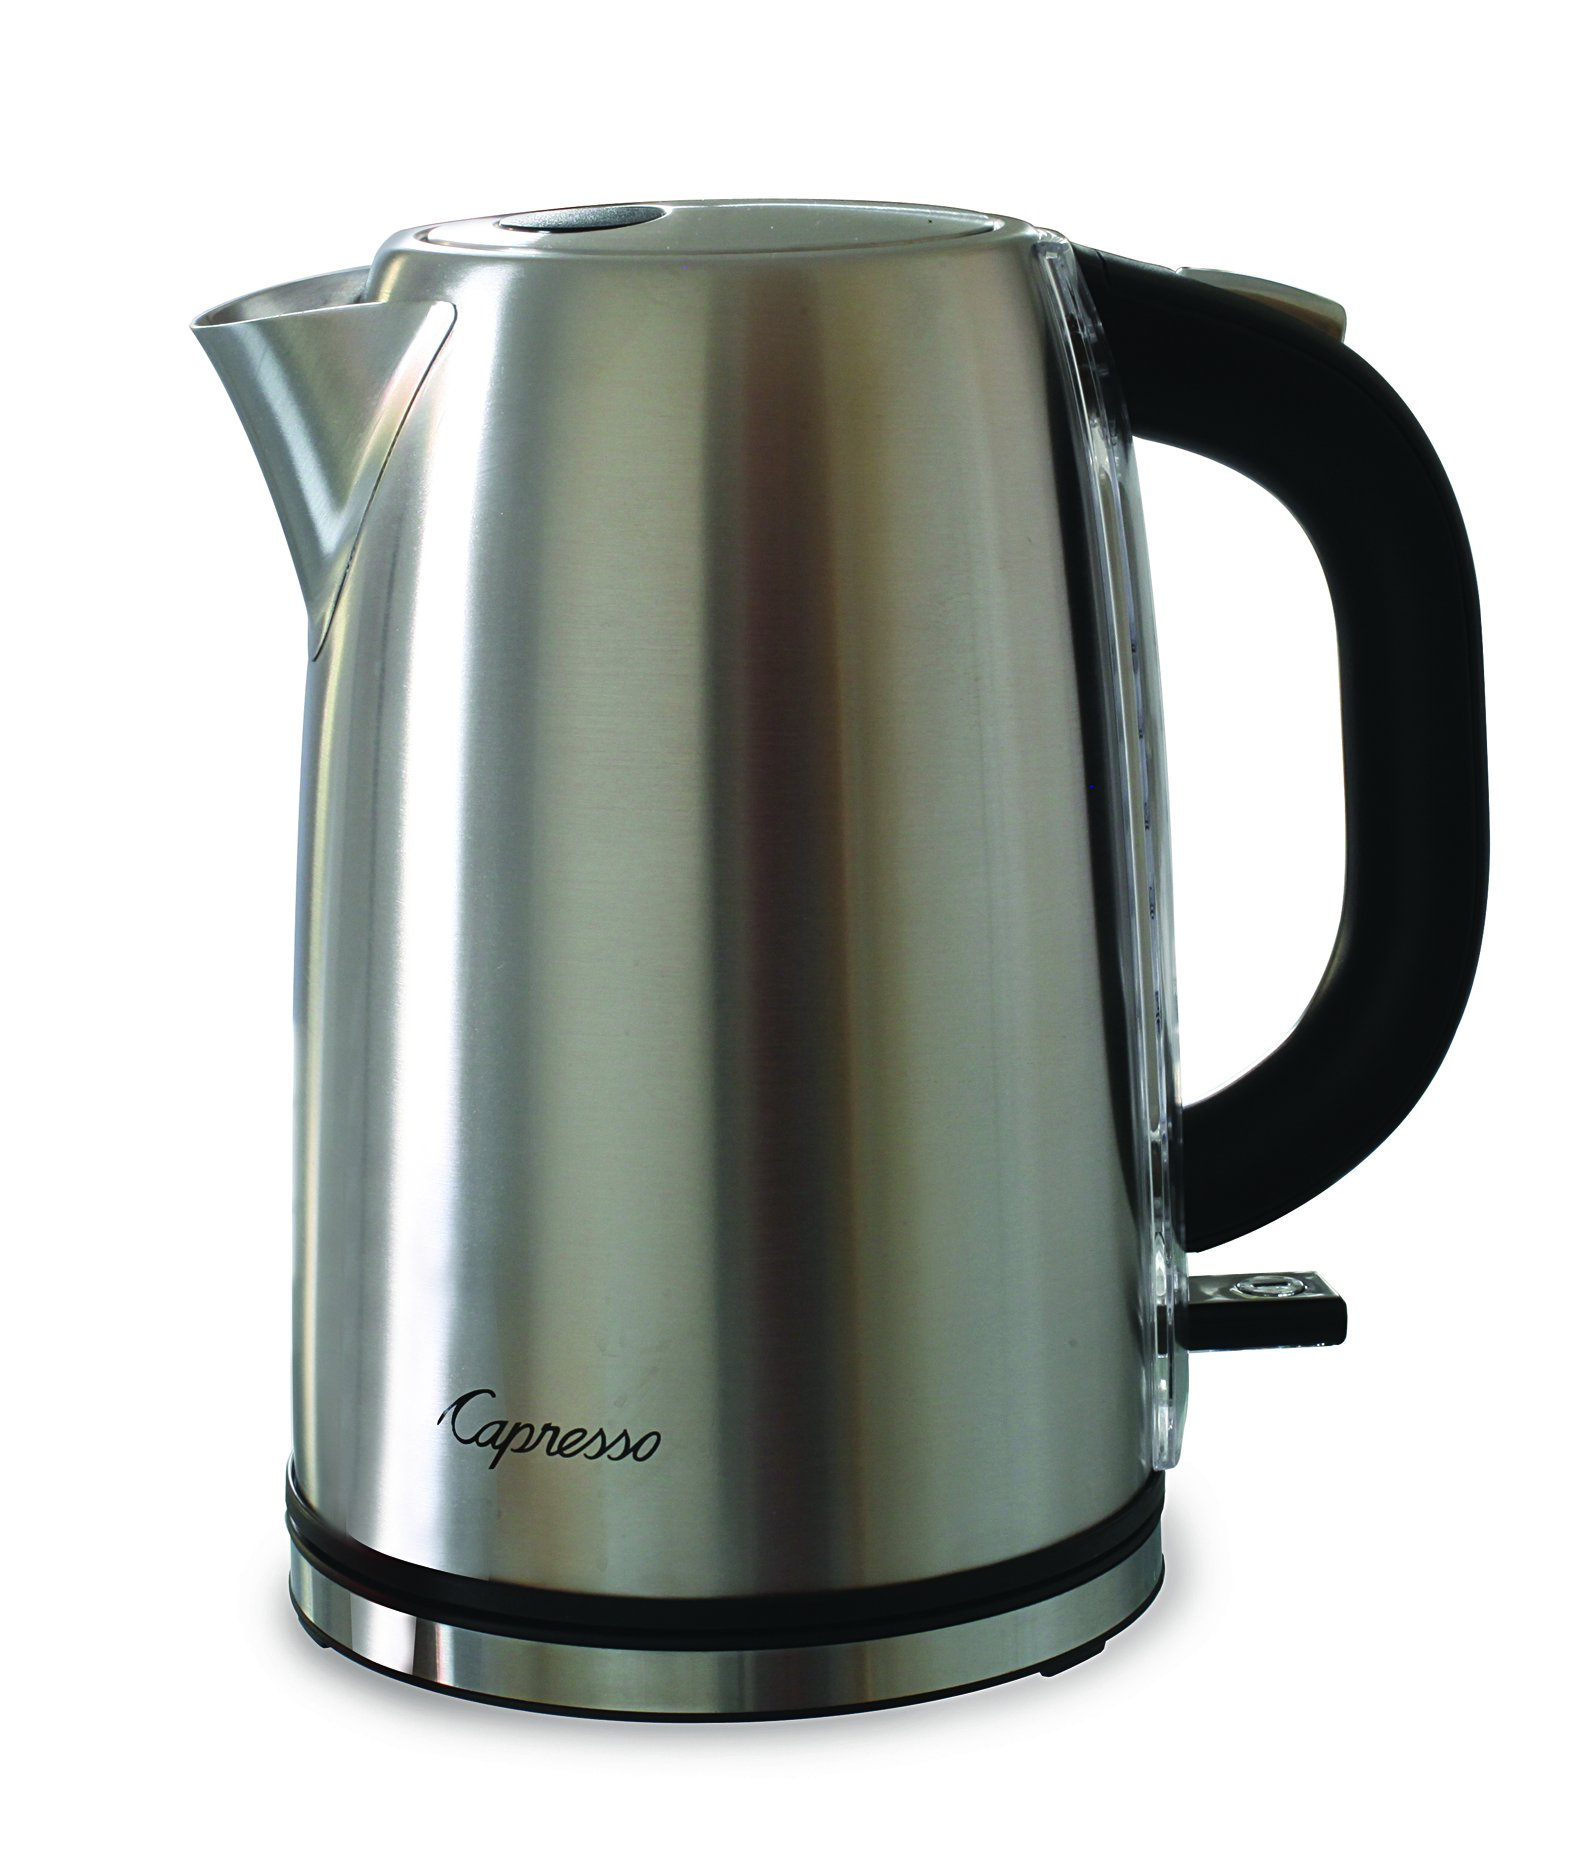 Capresso H2O Steel Water Kettle, Silver